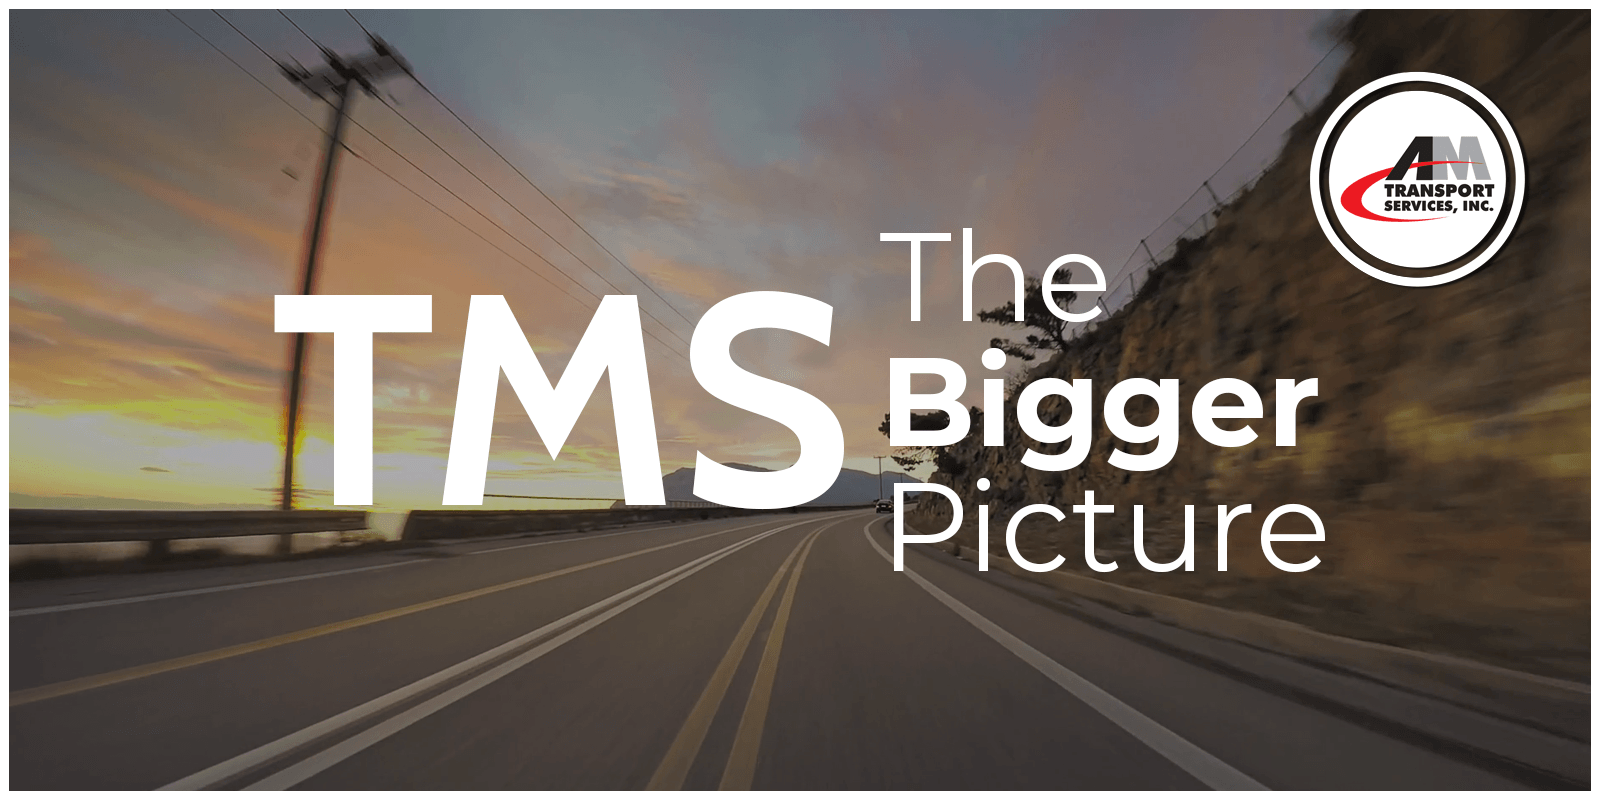 A Highway, A Truck, TMS: The Bigger Picture